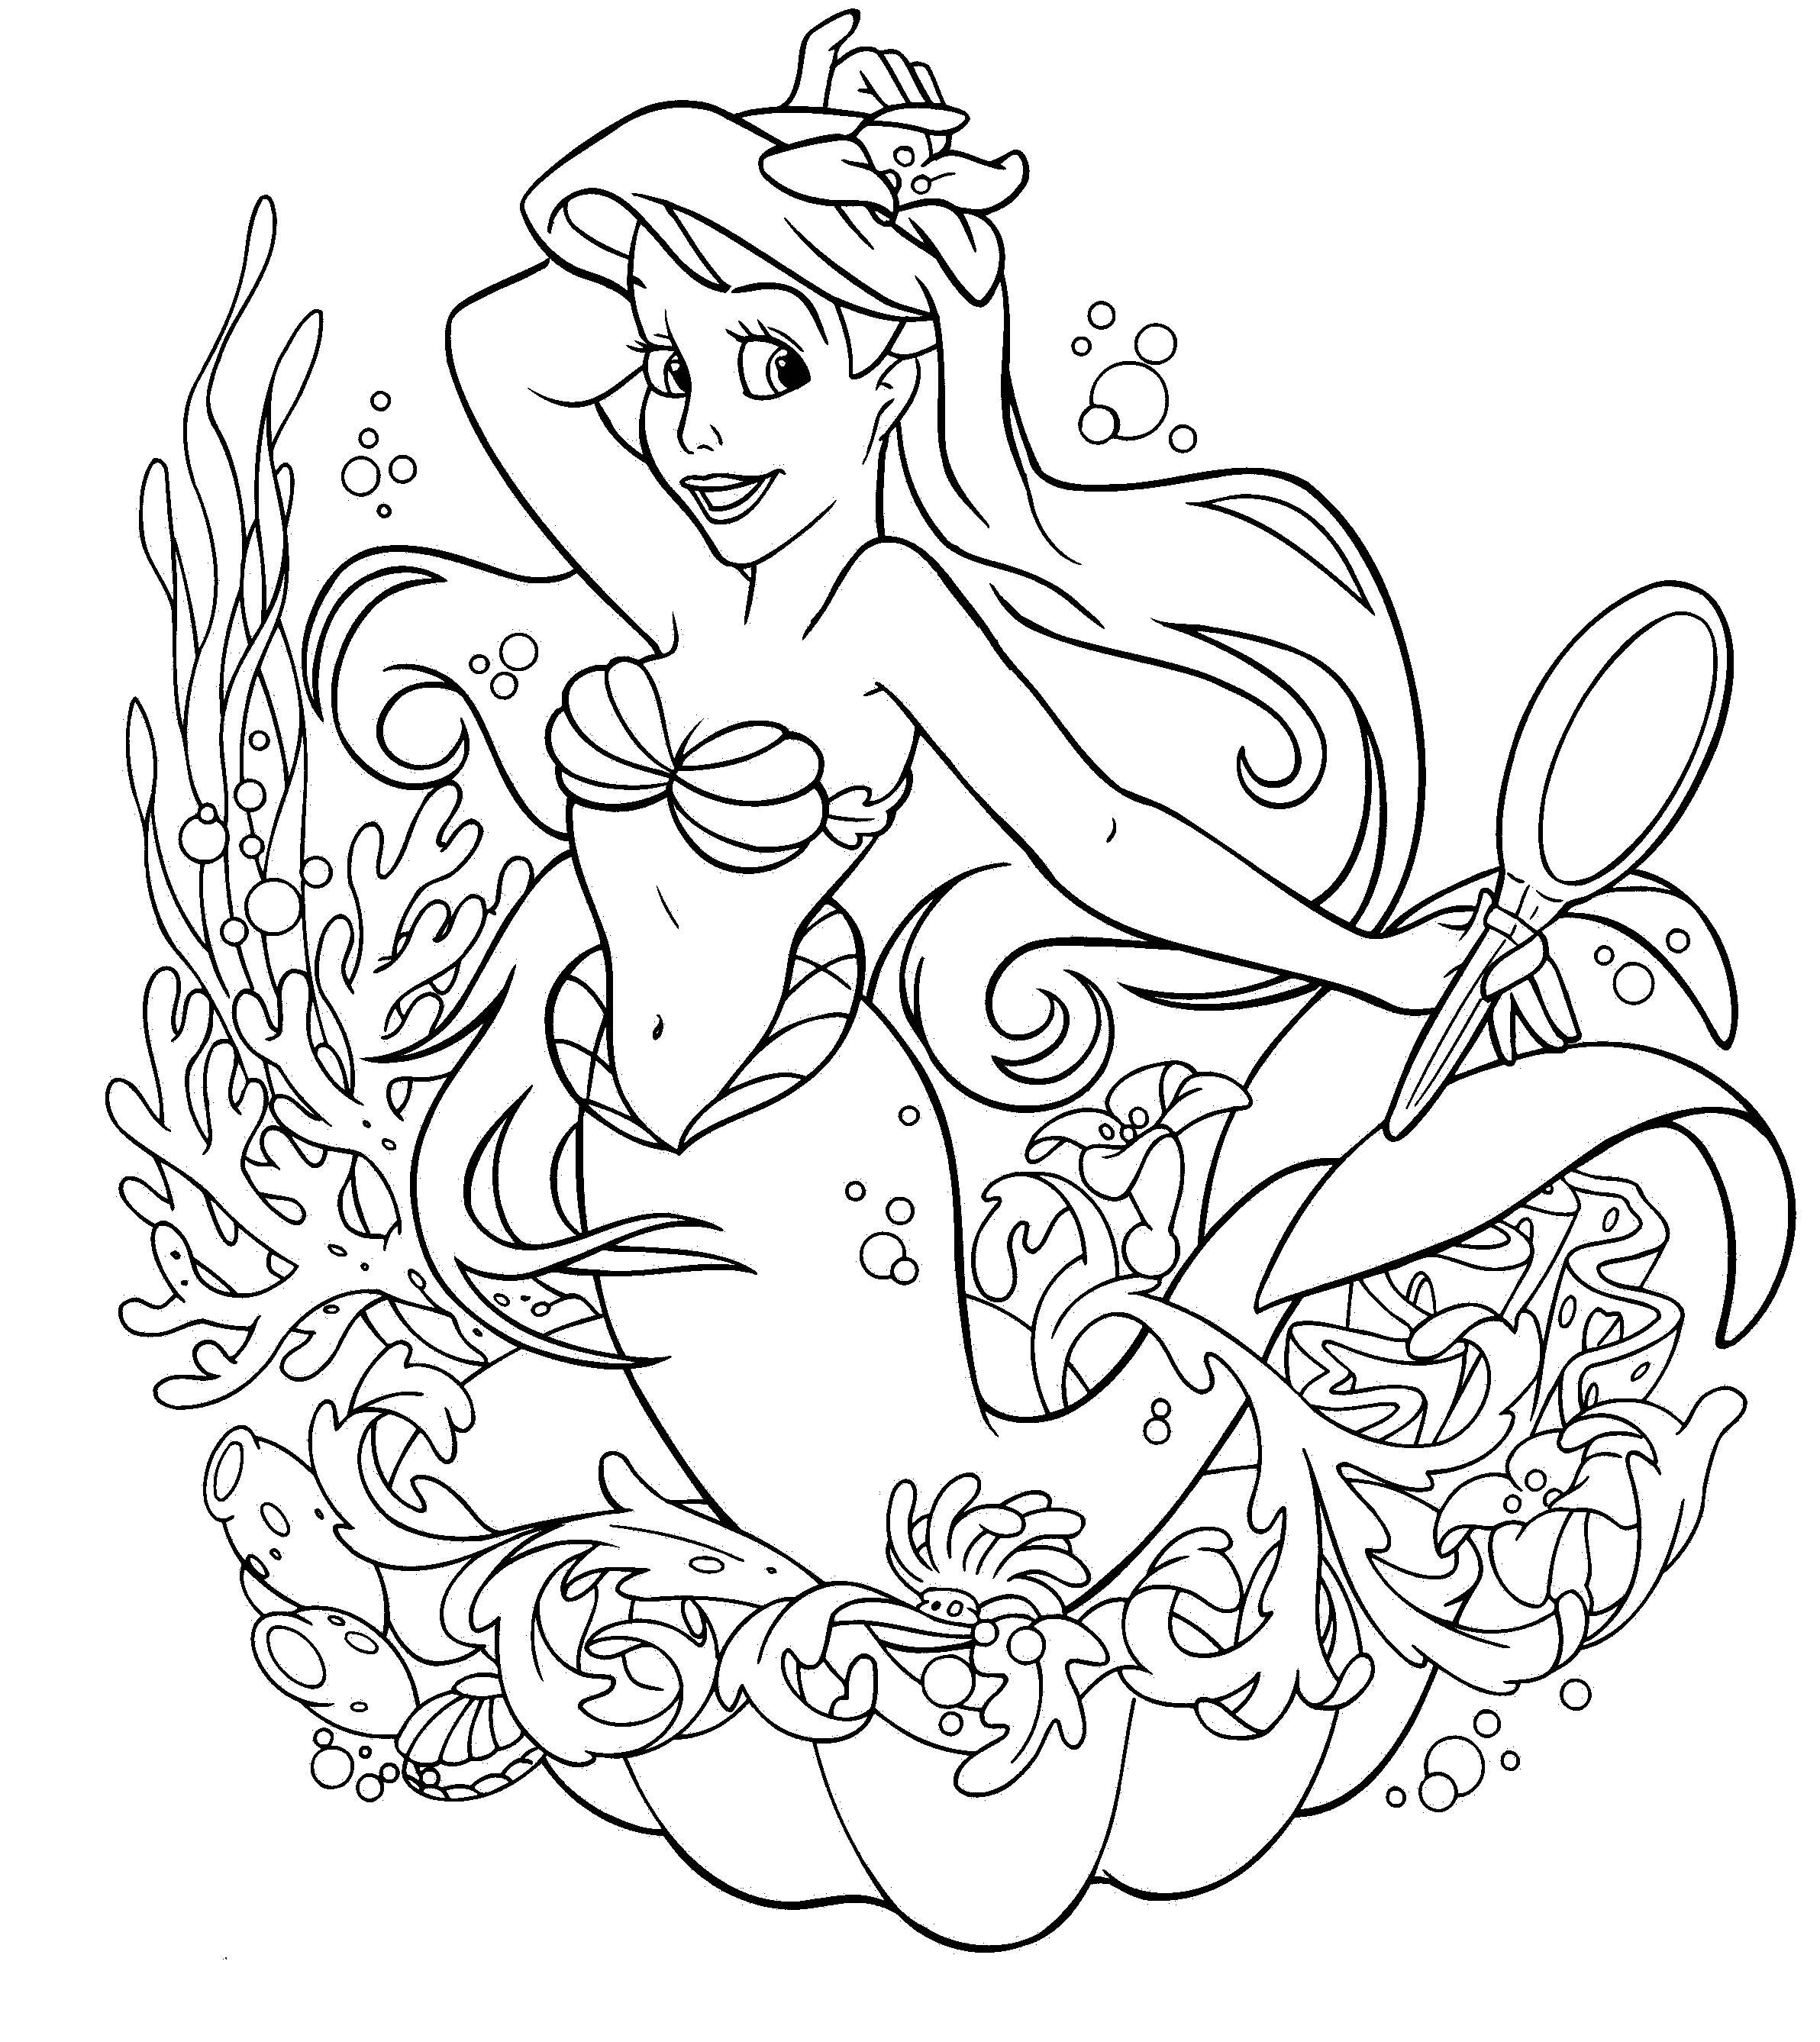 Ariel princess coloring pages free - Princess Coloring Pages Coloring Pages Hello Kitty Coloring Middot Disney Princesses Coloring Page Free Printable Disney Ariel